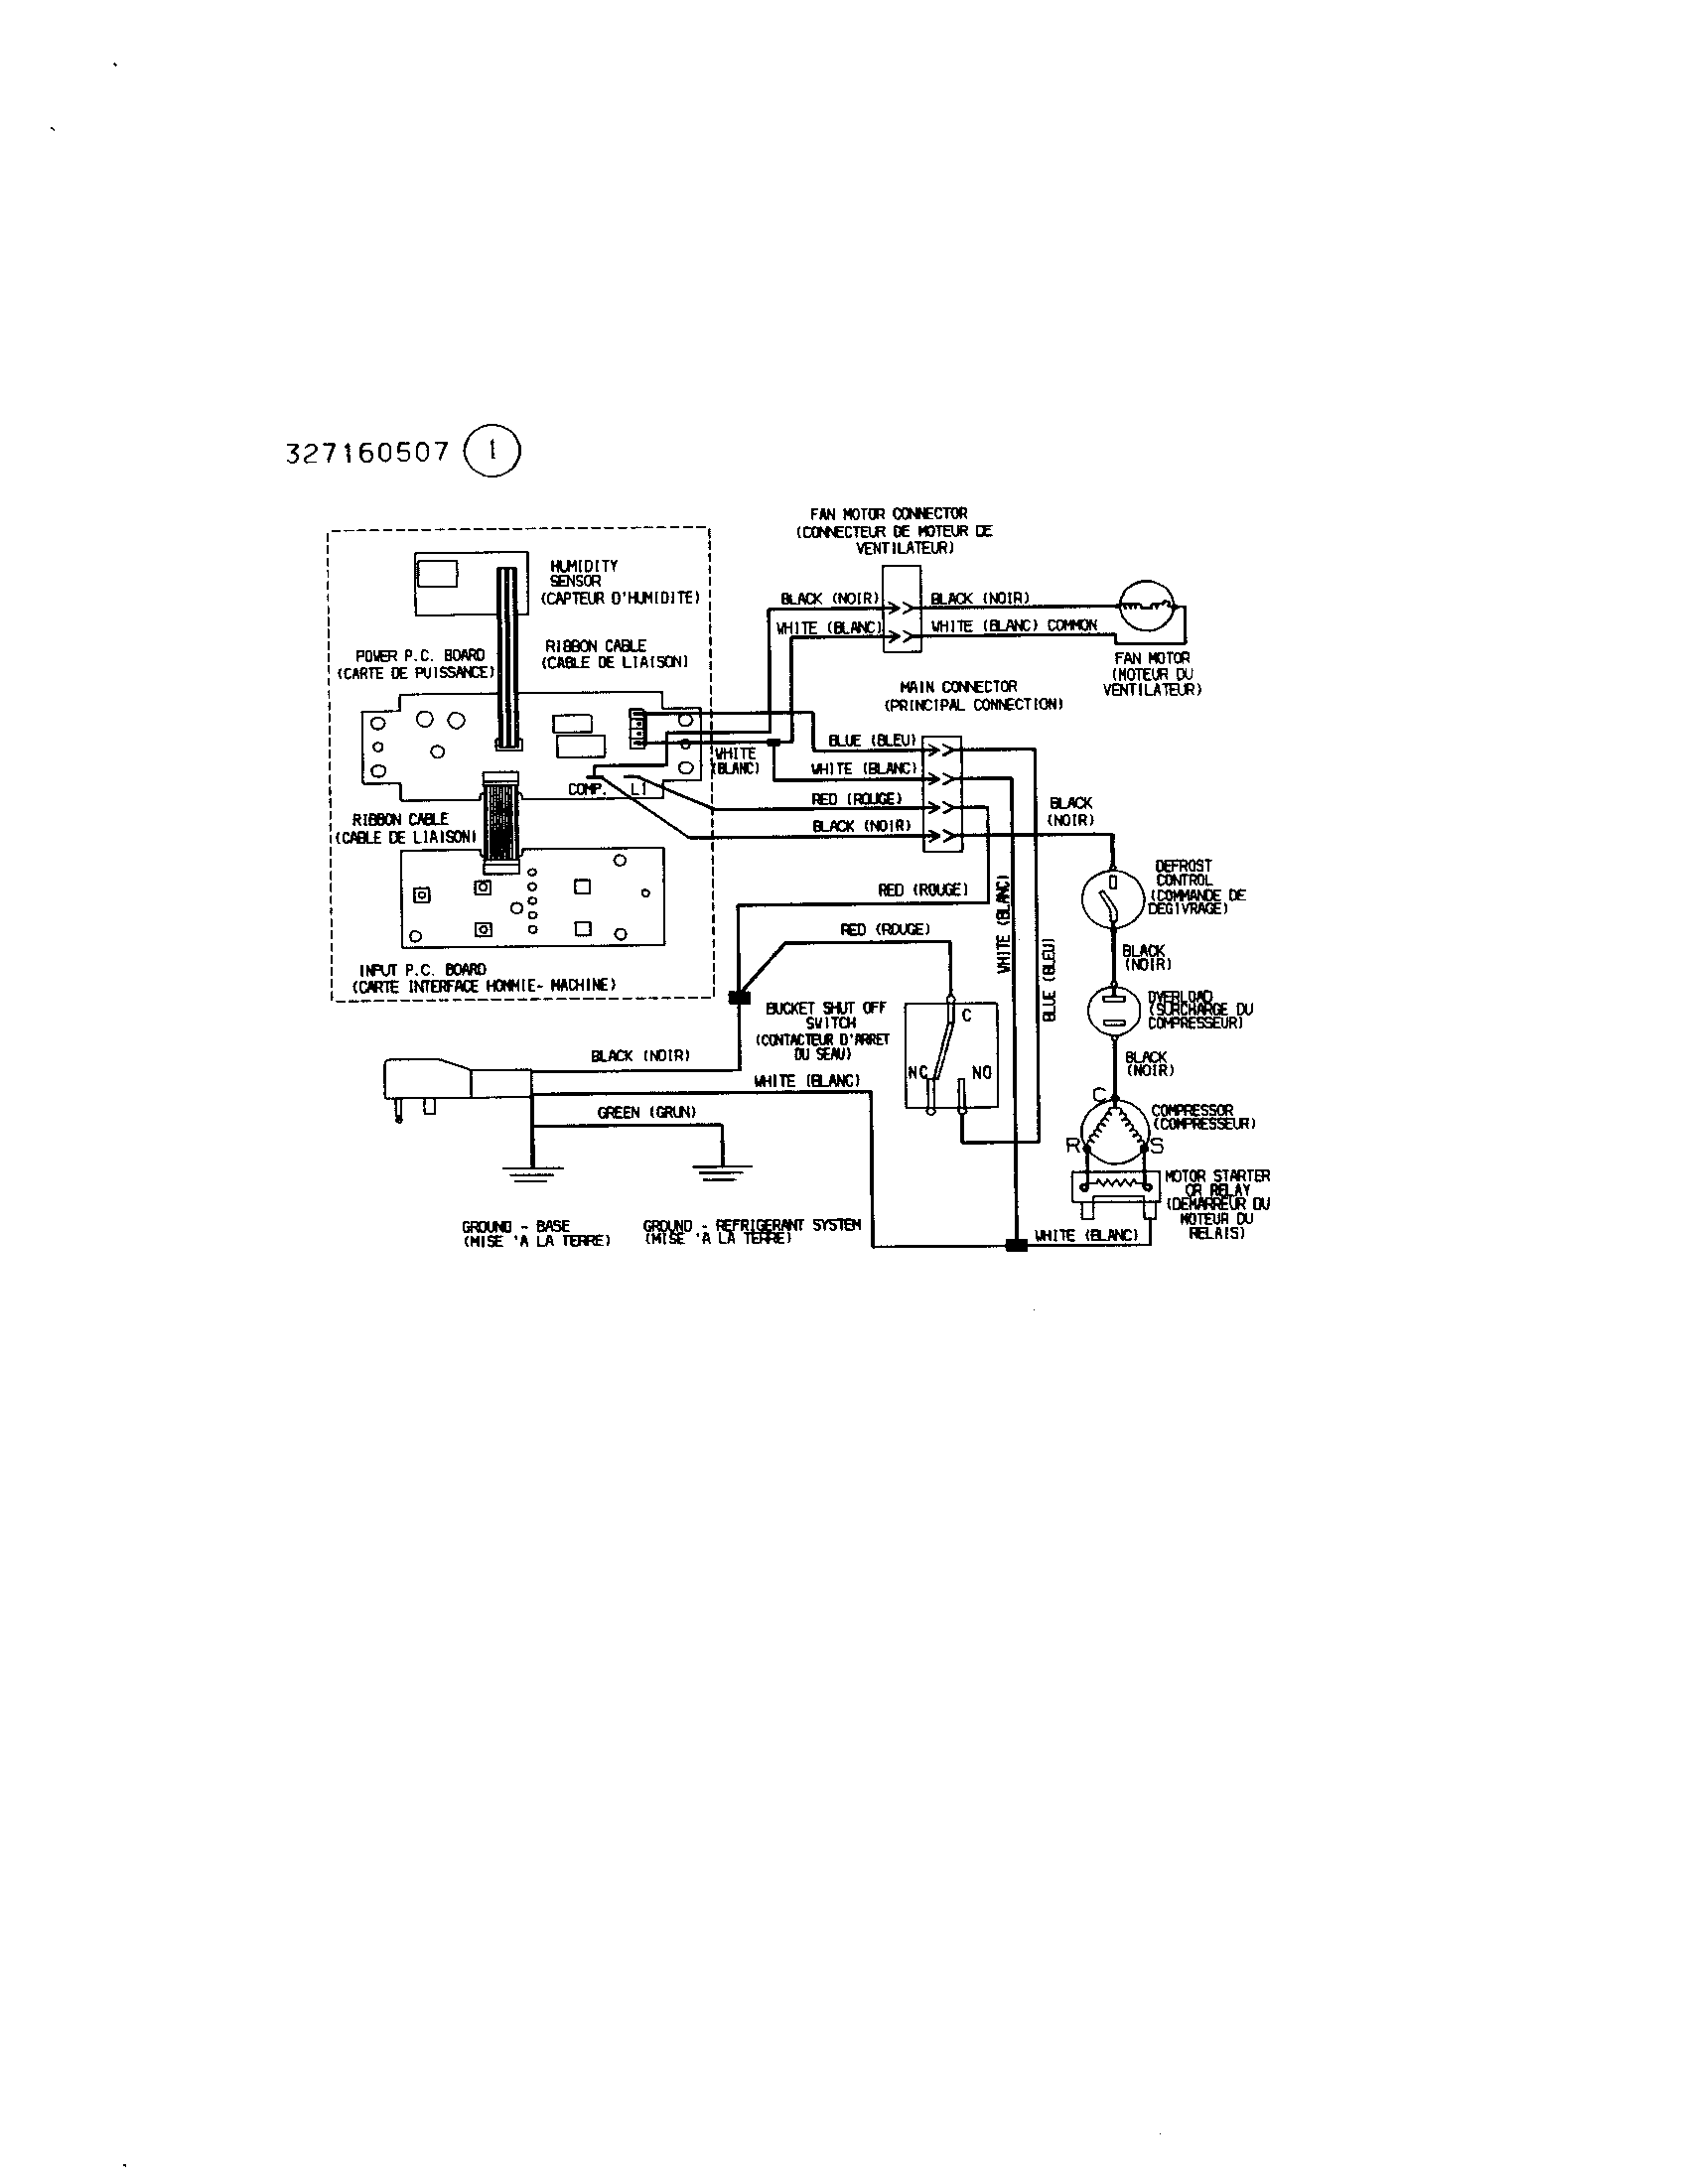 WIRING DIAGRAM Diagram & Parts List for Model 25350300000